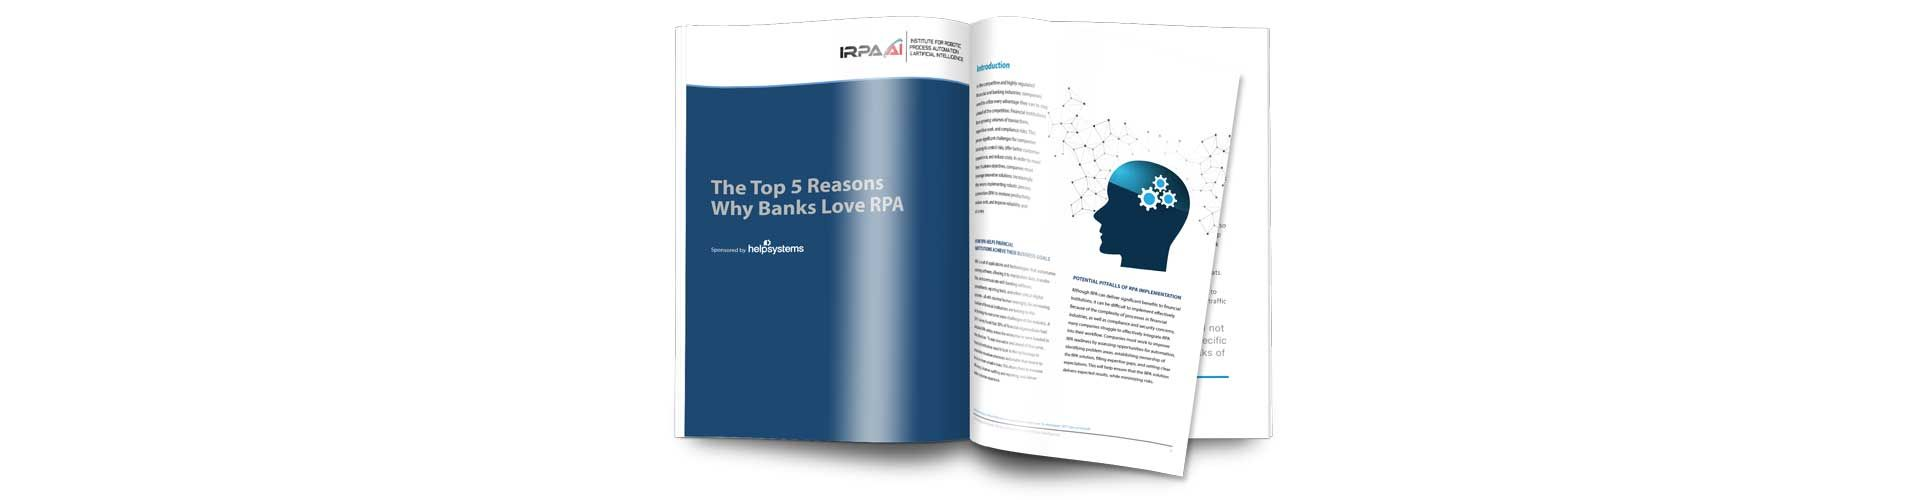 5 Reasons Why Banks Love RPA Guide